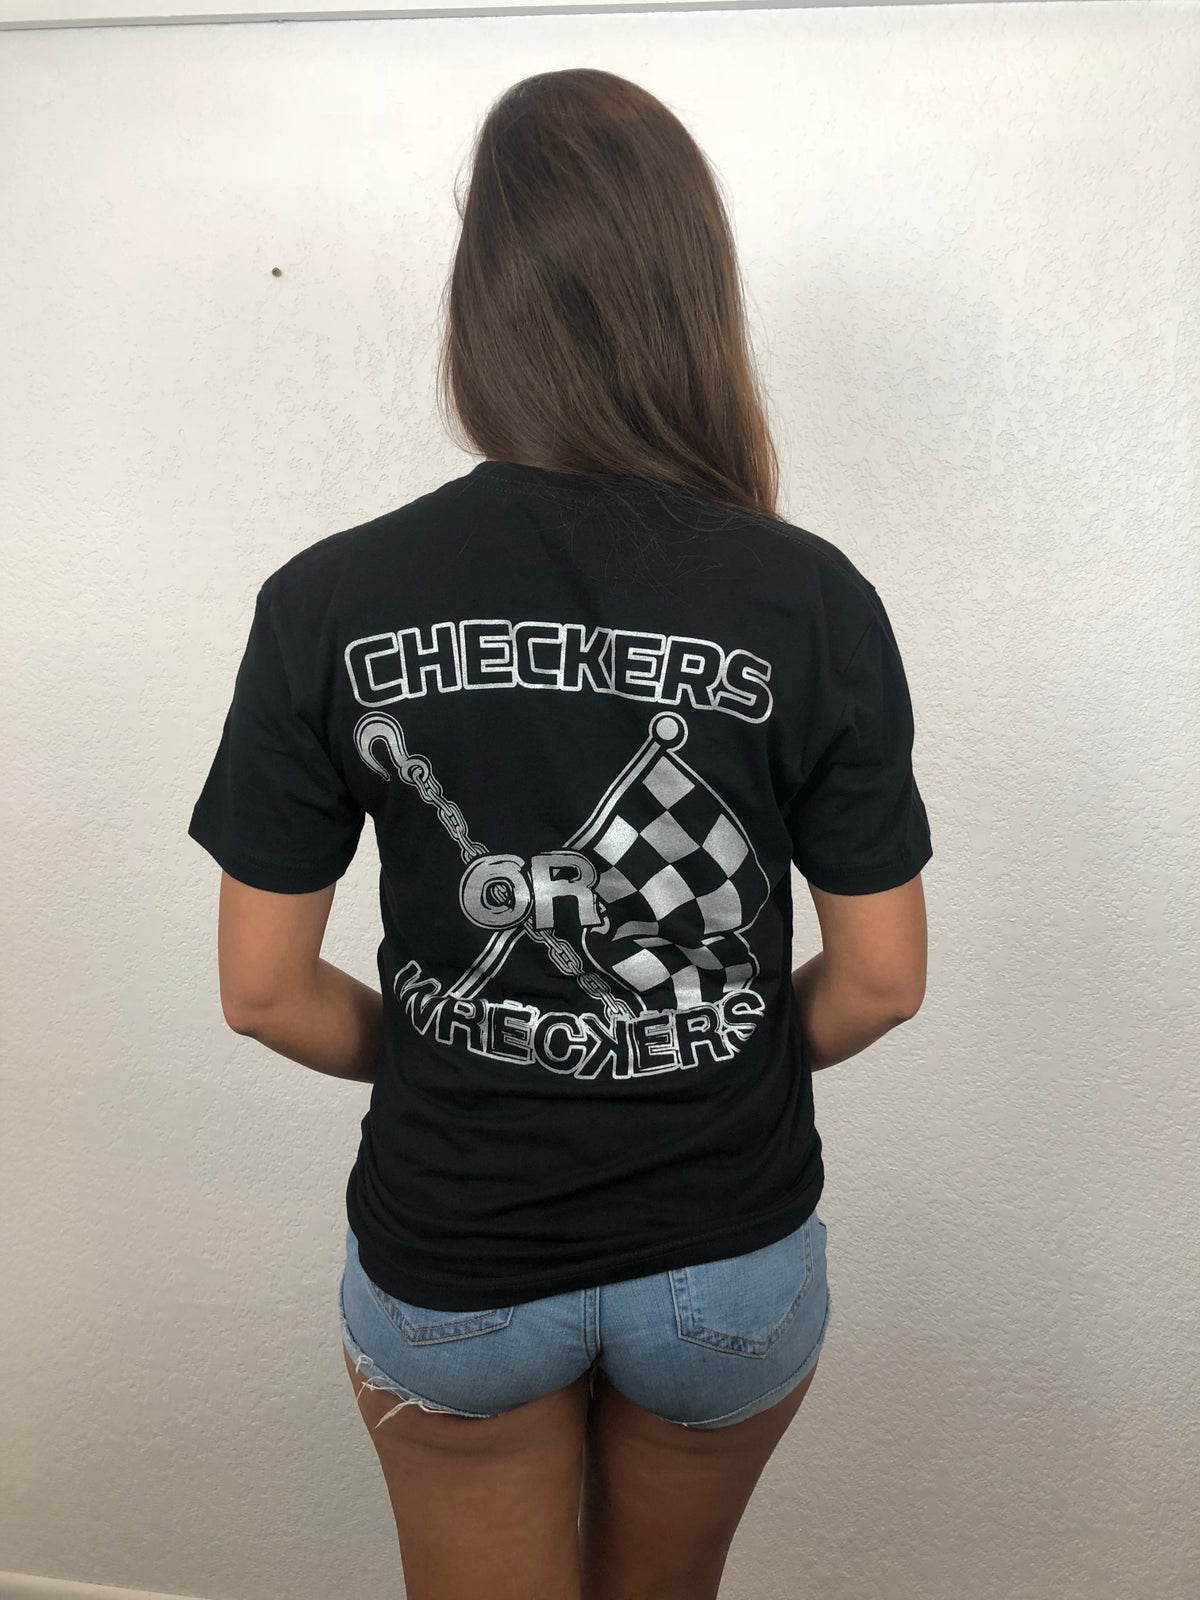 Image of Checkers or Wreckers t-shirt